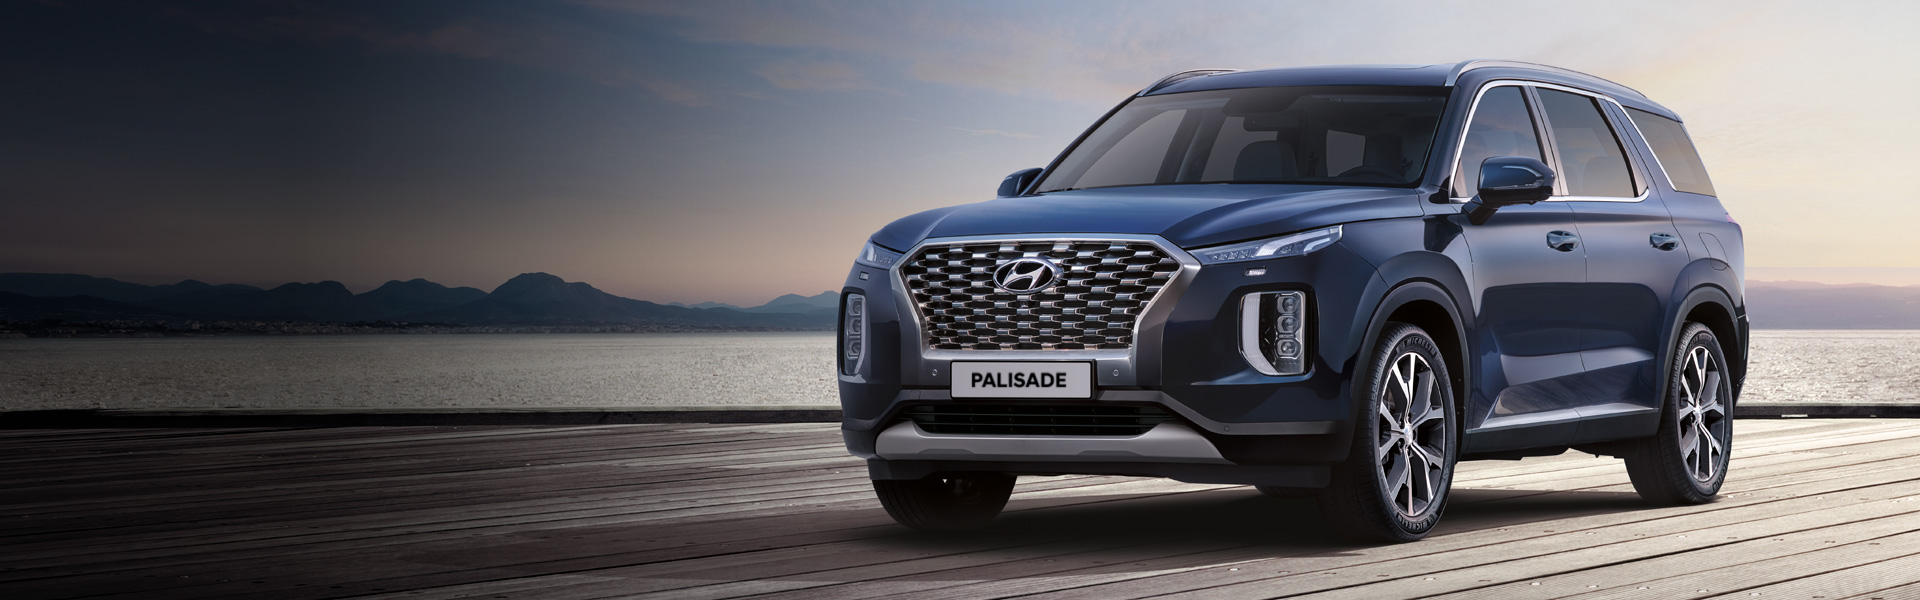 All New Palisade